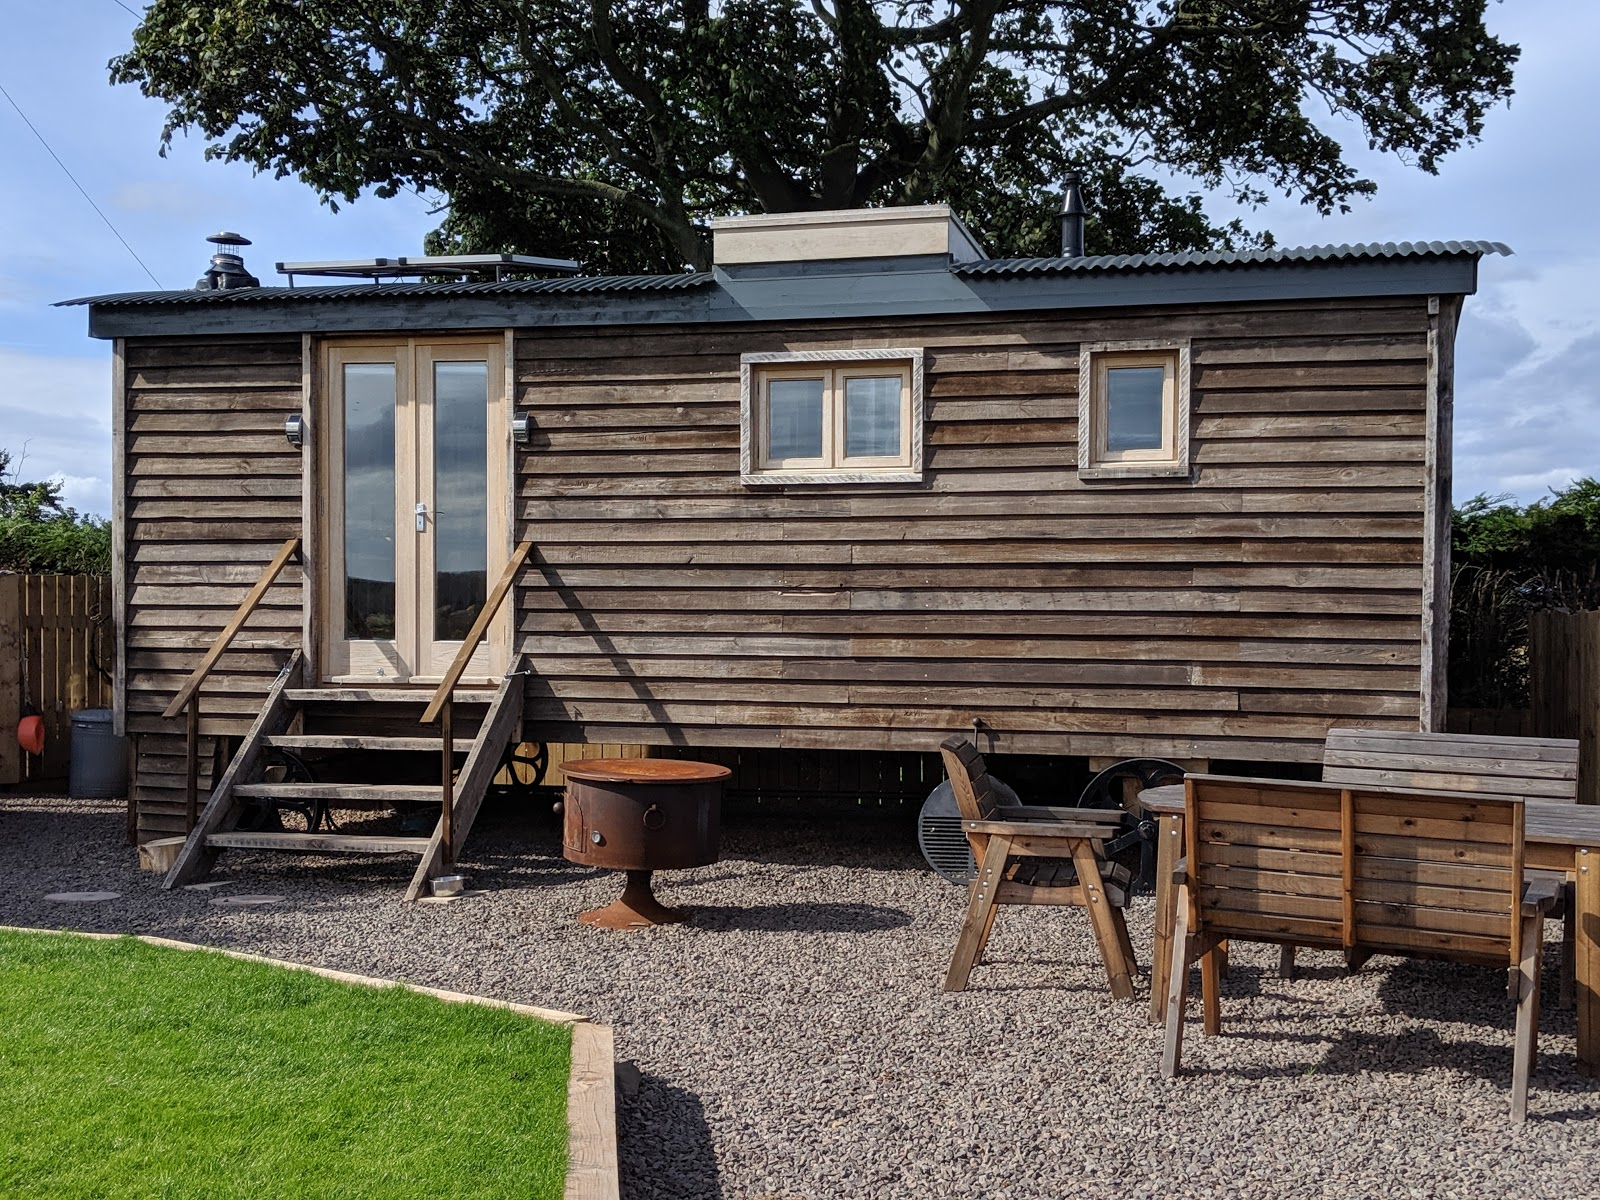 Shepherd's Retreats Beadnell Review - Dog-friendly Glamping in Northumberland